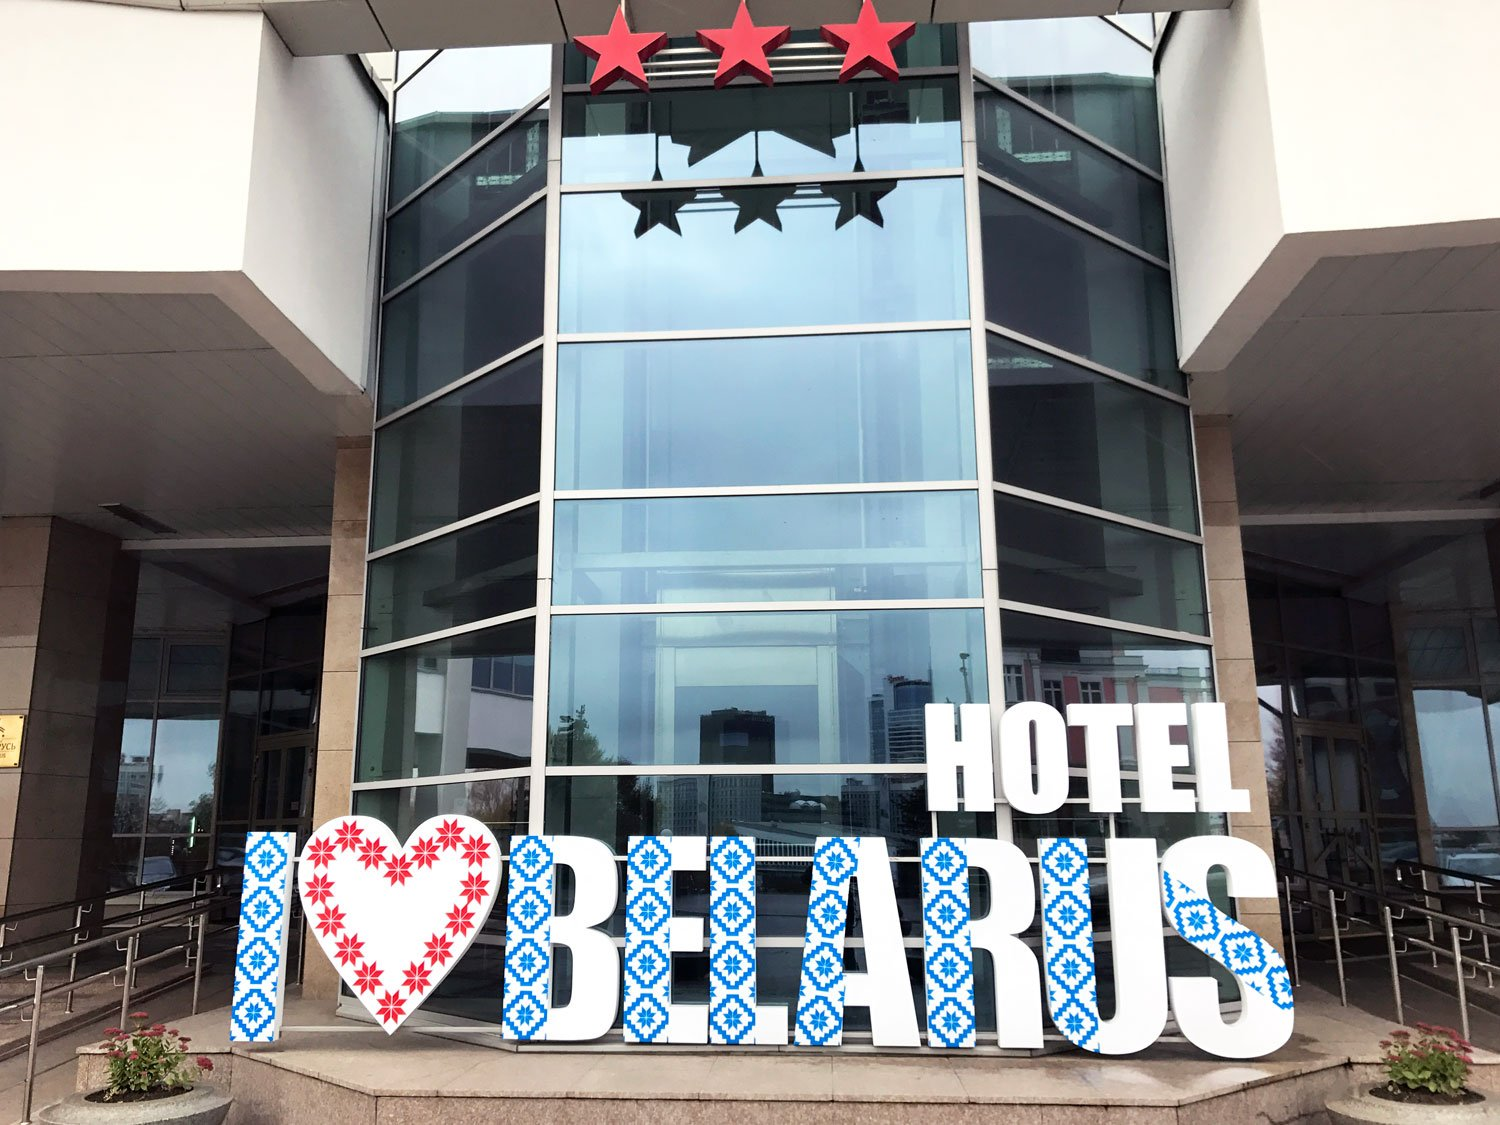 "Hotel Belarus with an I ""heart"" Hotel Belarus sign in front and three red stars, indicating the class of the hotel"